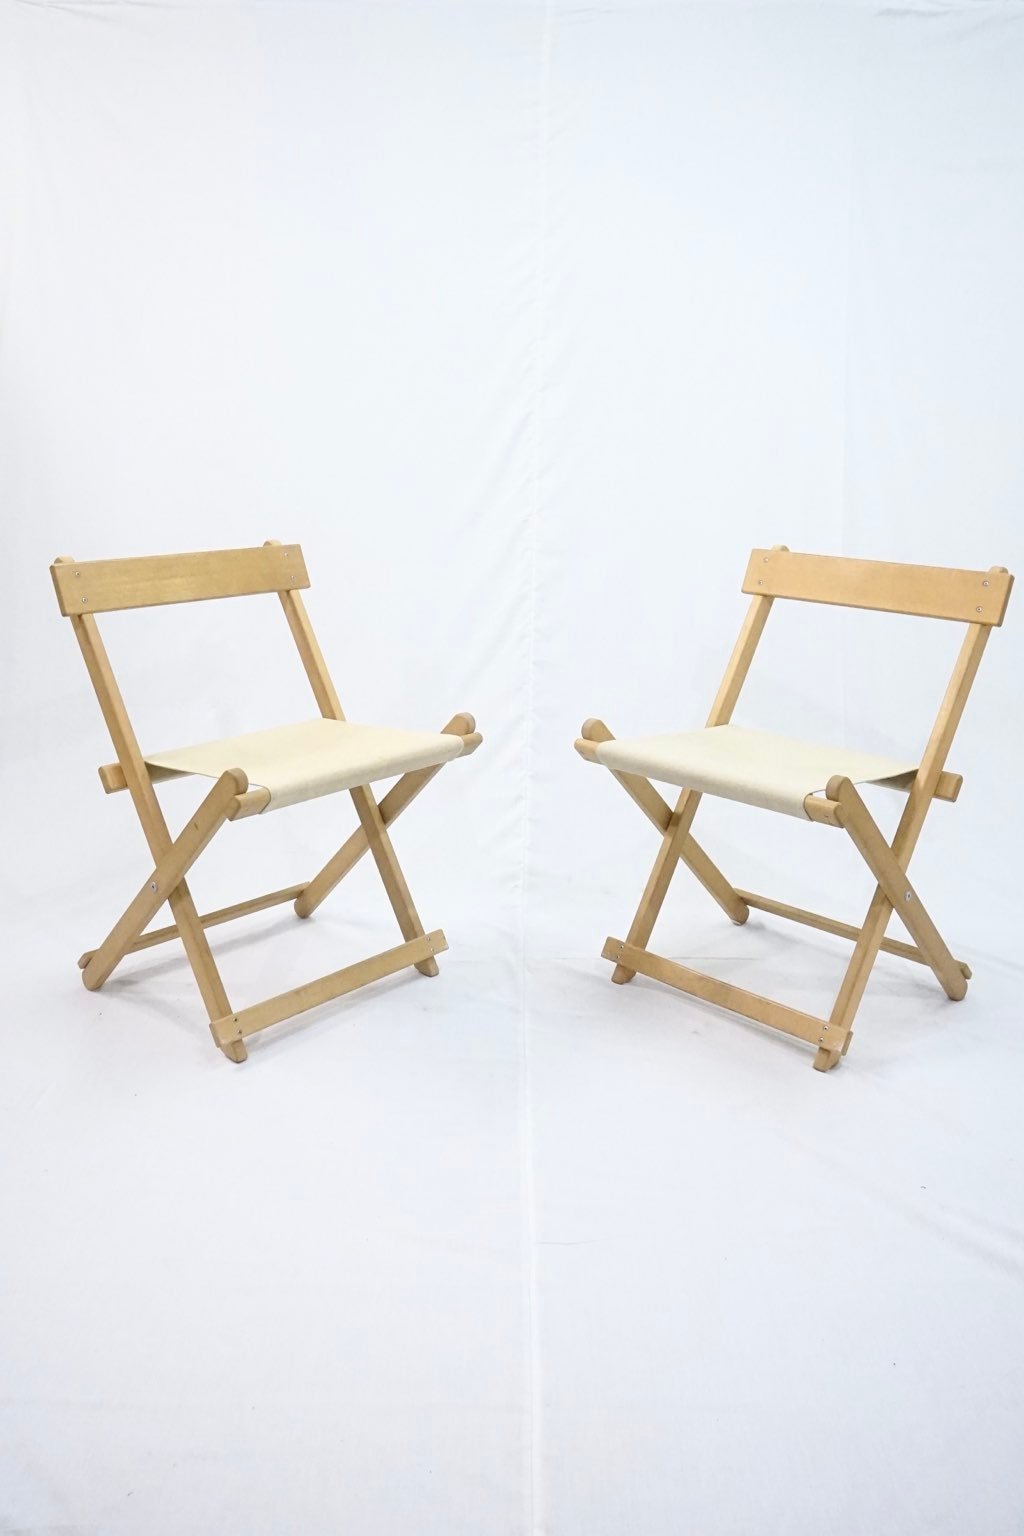 Børge Mogensen folding chairs : Price upon request